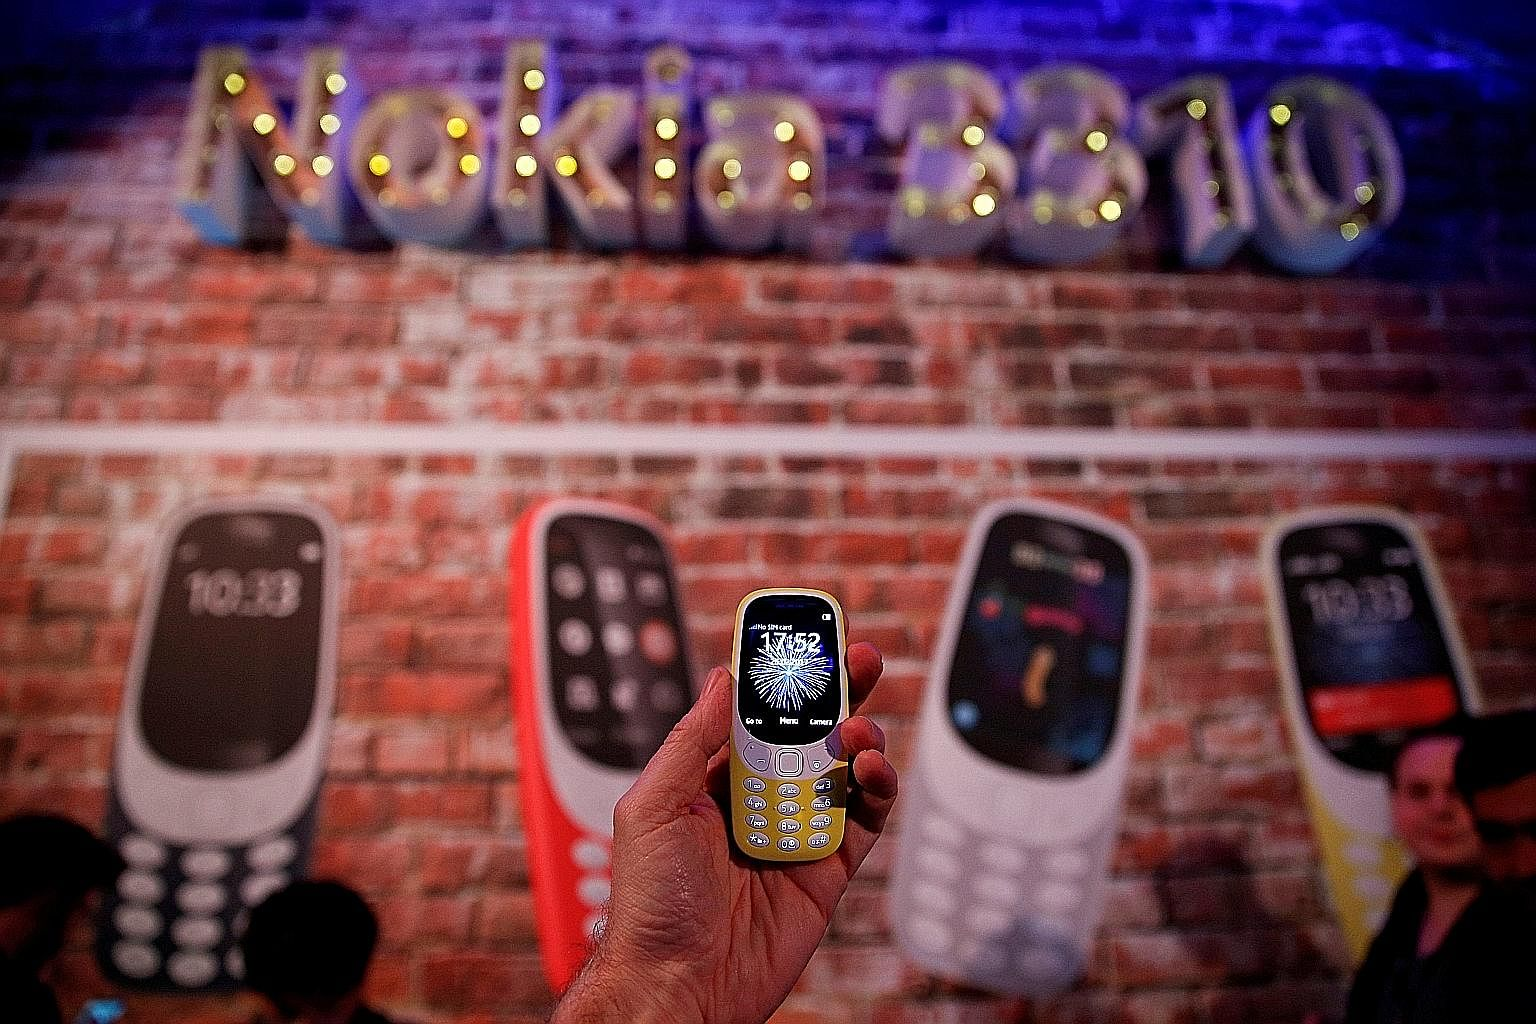 A Nokia 3310 being presented at the Mobile World Congress in Barcelona, Spain, in February. The phone, one of two new devices which went on sale in Singapore this month, is a reboot of the feature phone with the same name from 2000.